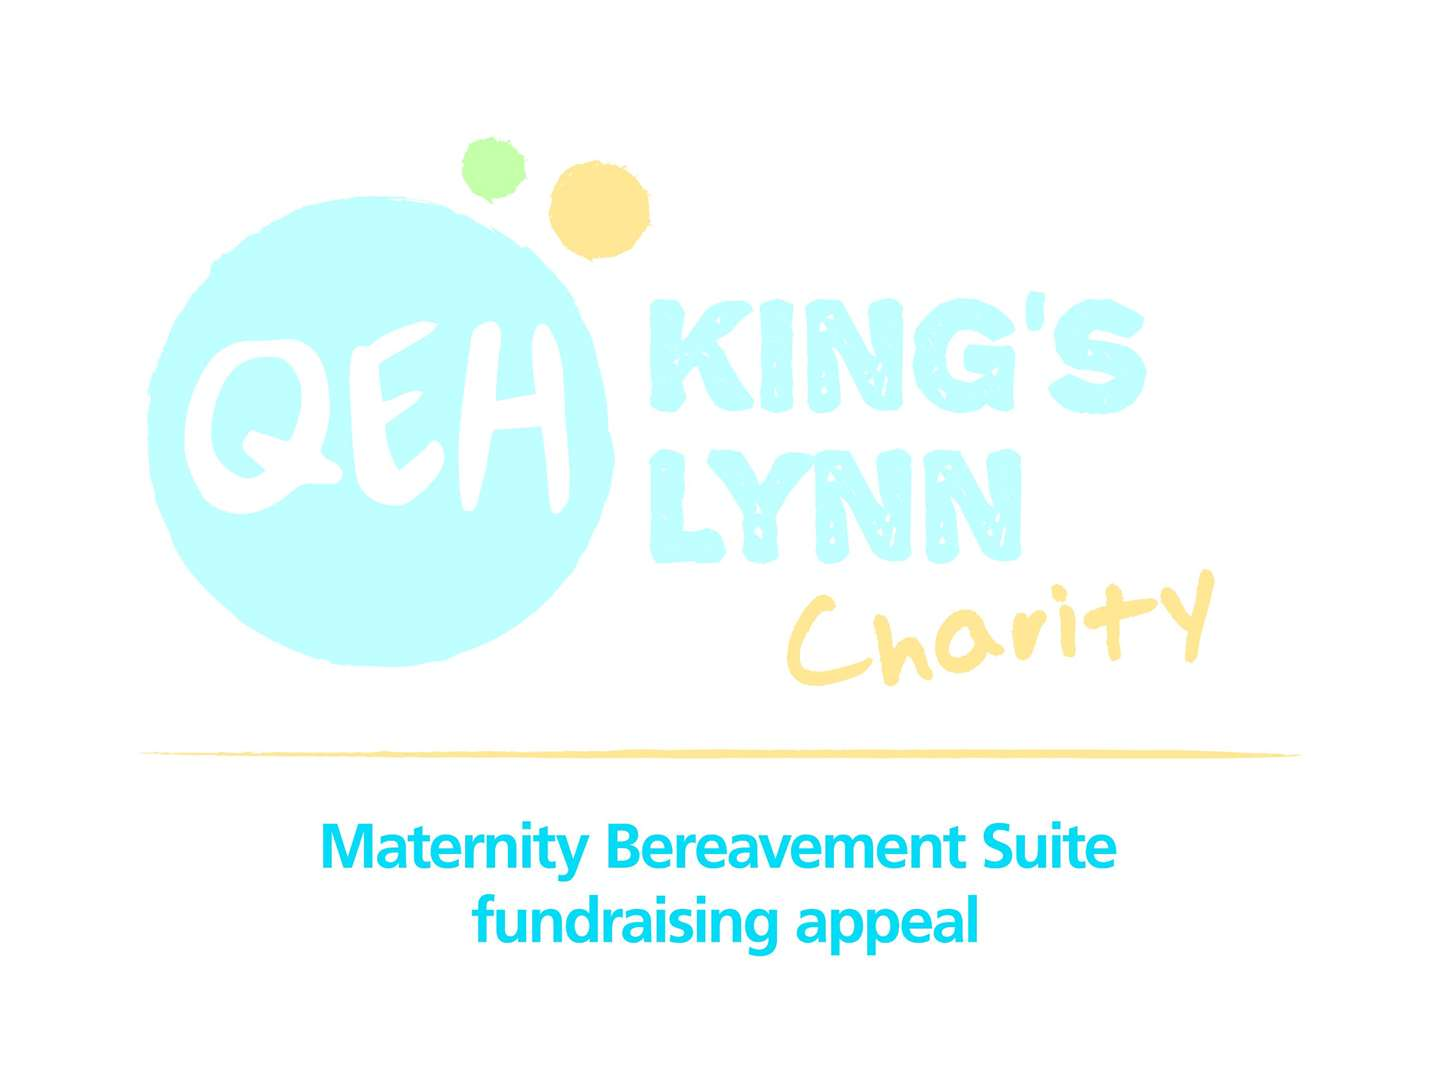 Charity of the Year 2020 - Queen Elizabeth Hospital Maternity Bereavement Suite logo